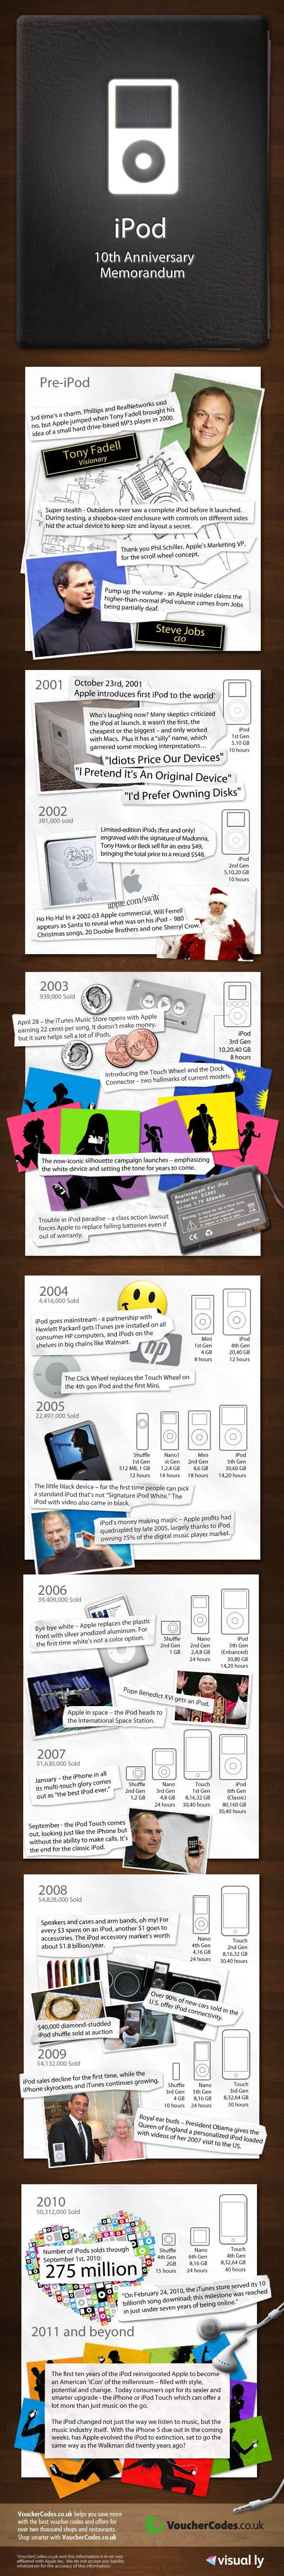 Infographic iPod 10th Anniversary Memorandum